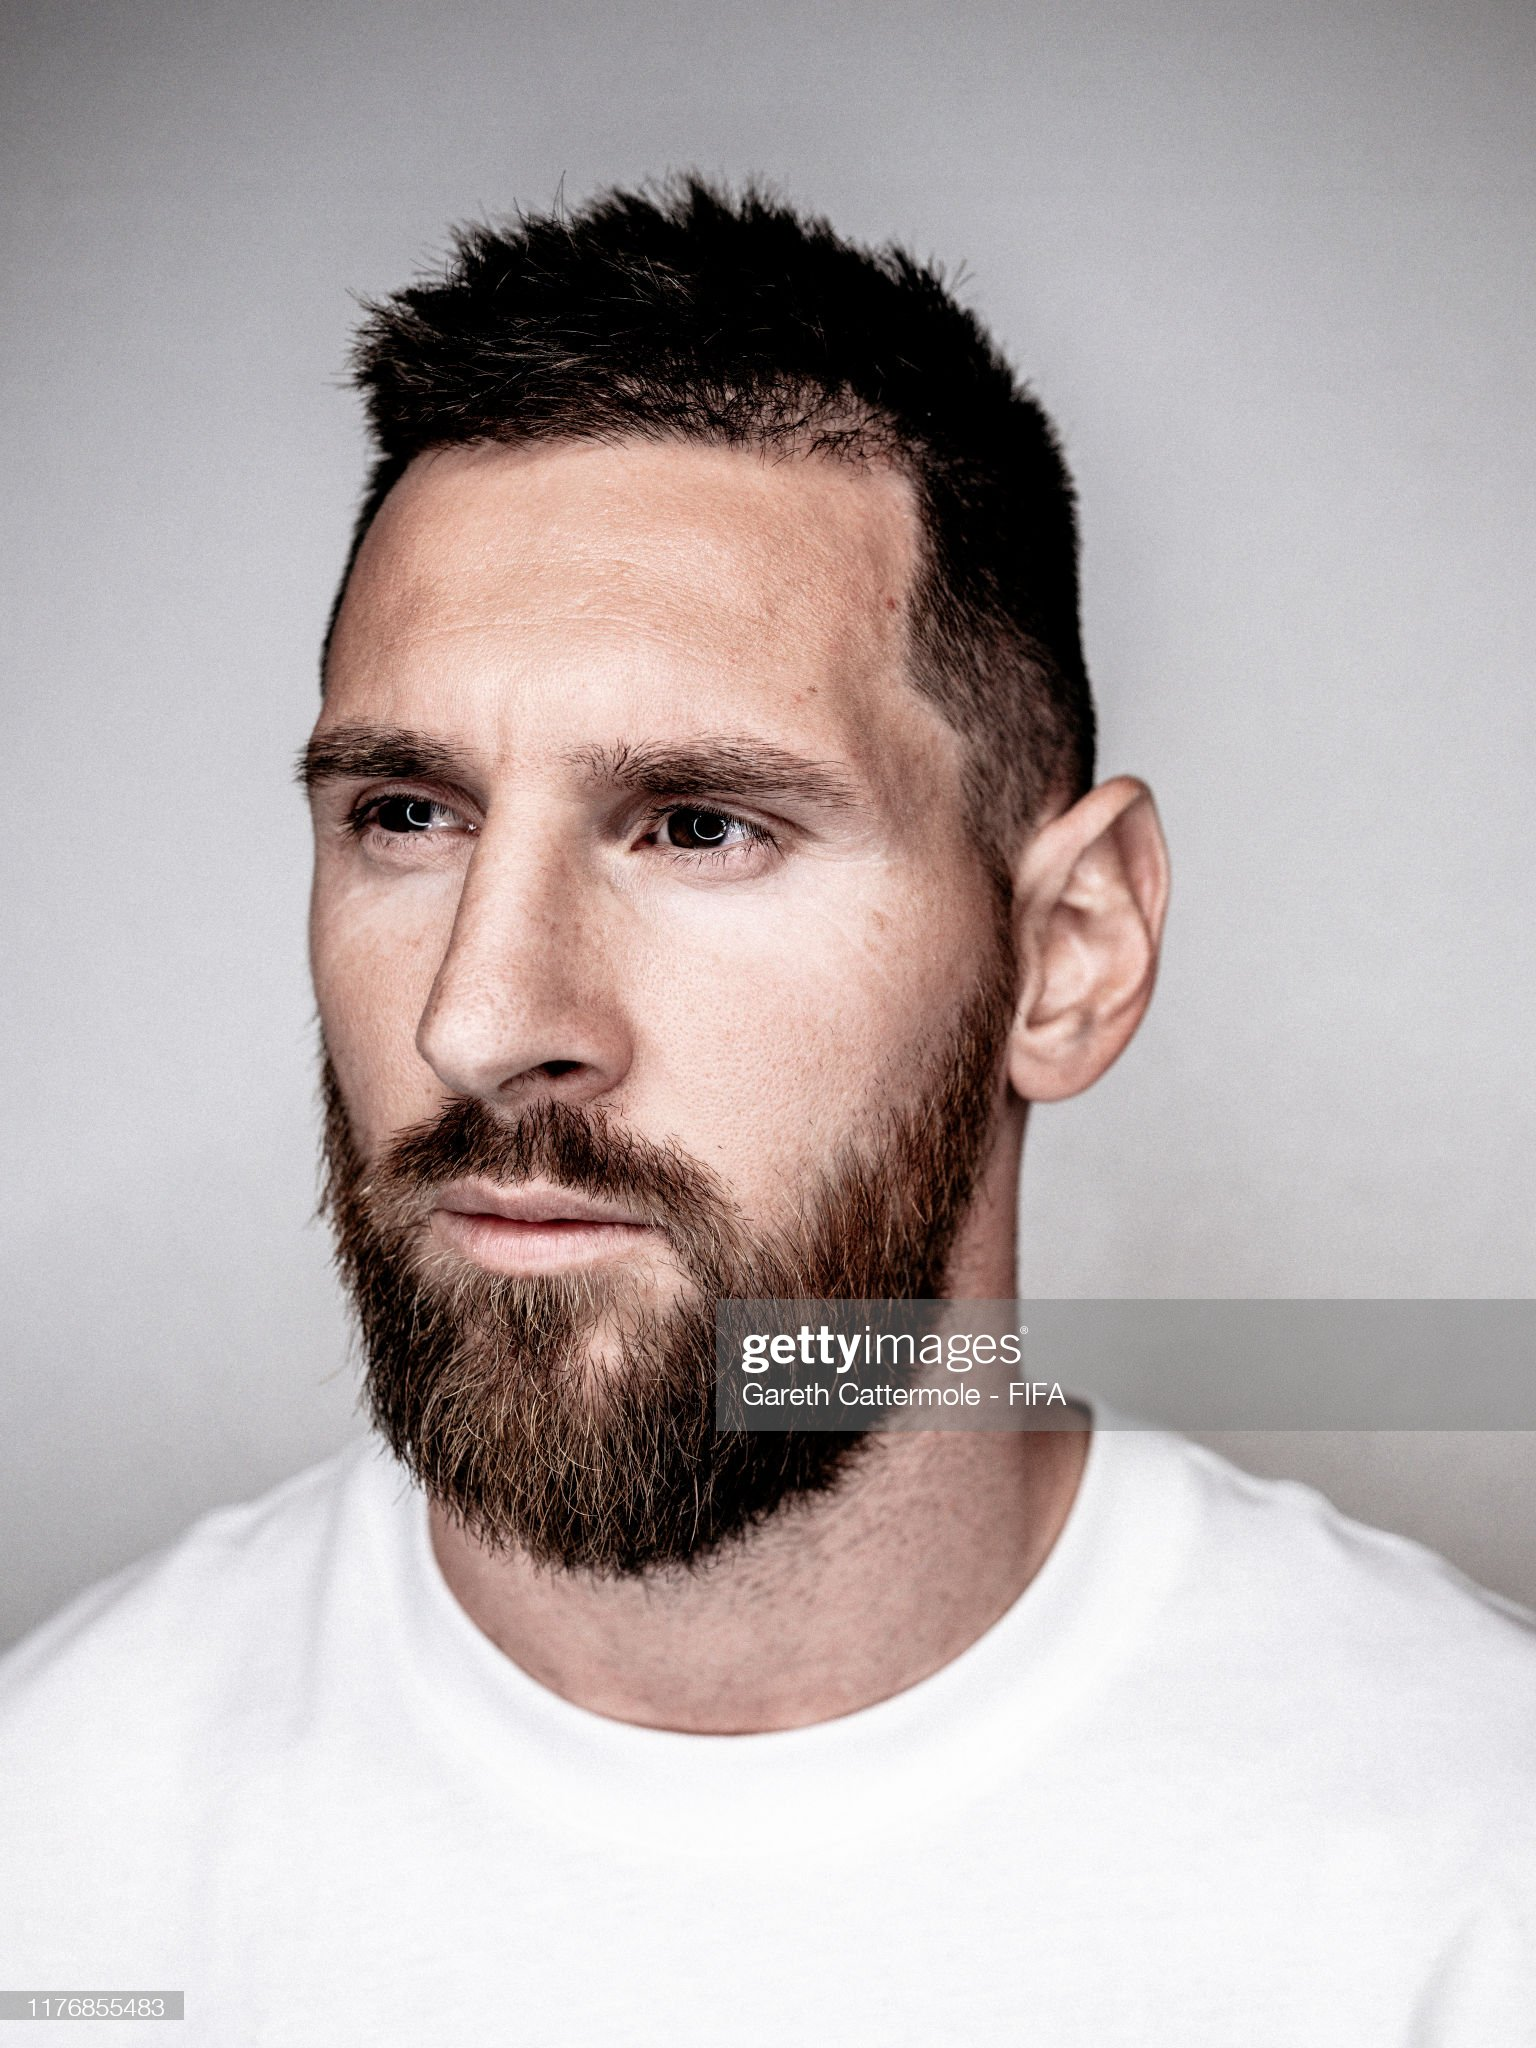 The Best FIFA Football Awards 2019 Lionel-messi-of-fc-barcelona-and-argentina-poses-for-a-portrait-ahead-picture-id1176855483?s=2048x2048